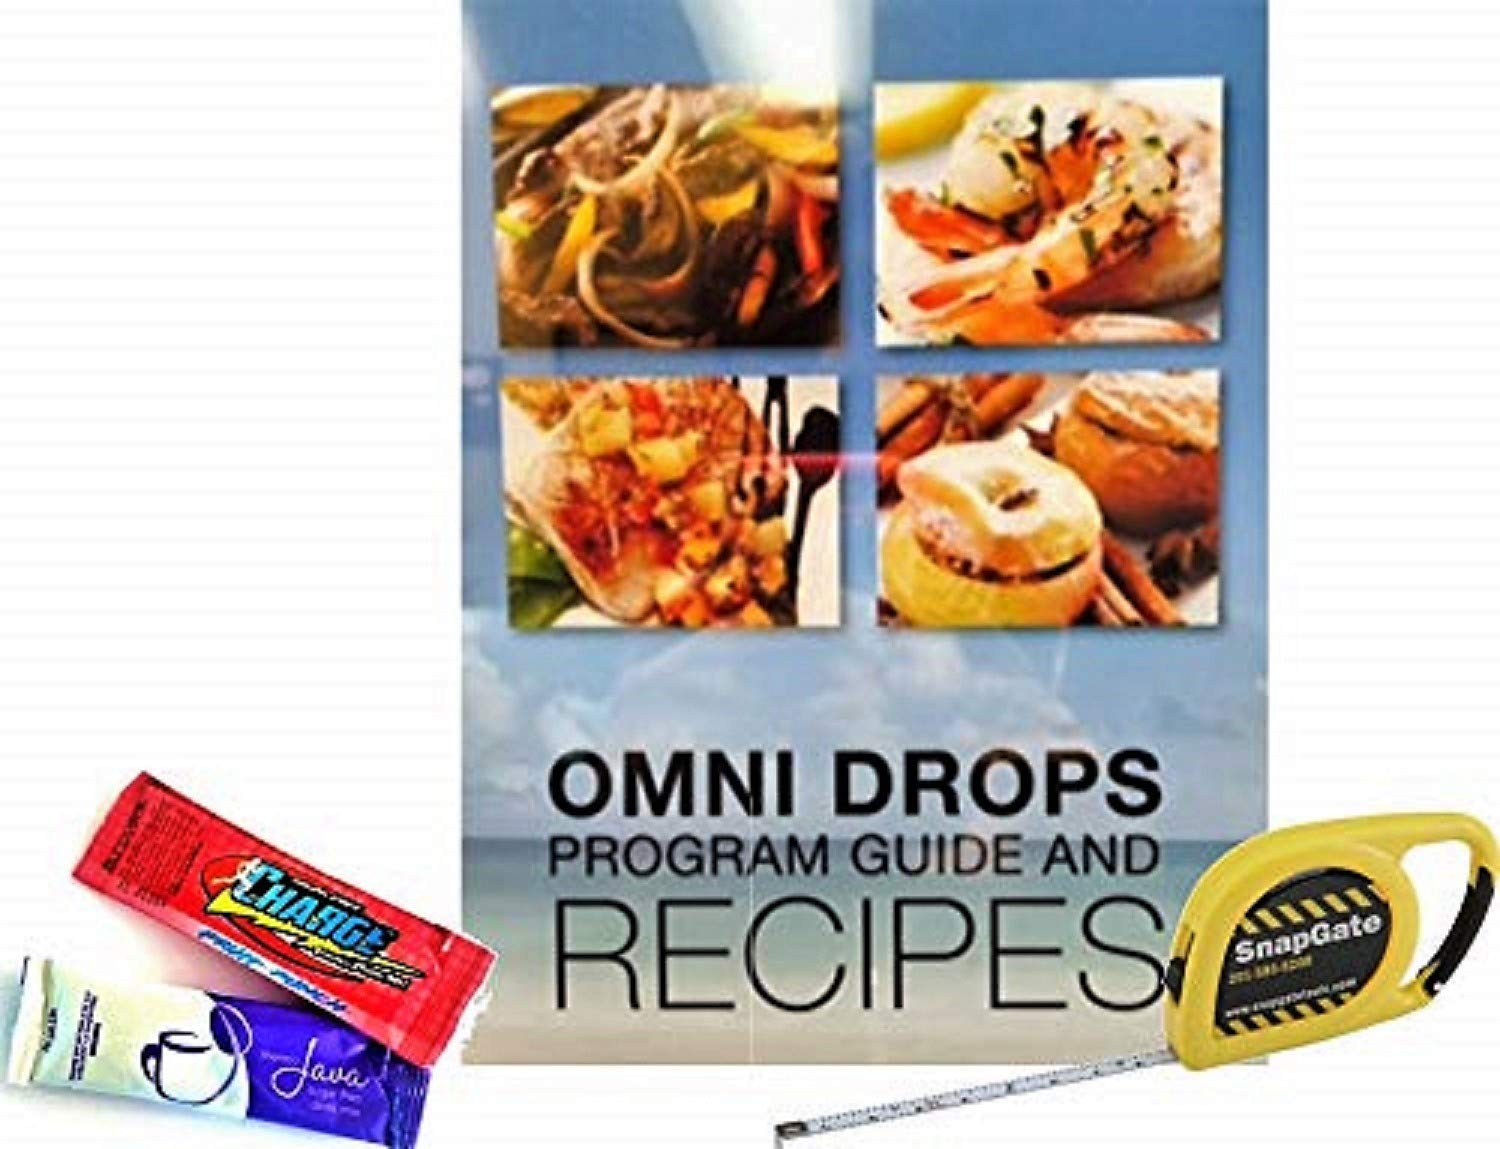 Omni Drop Program, Authentic Omnitrition - Basic Bundle Includes*** 4 oz Bottle Omni Drops with Vitamin B12 Program Guide, Samples and a Snapgate 10 Ft. Carabiner Tape Measure by Generic